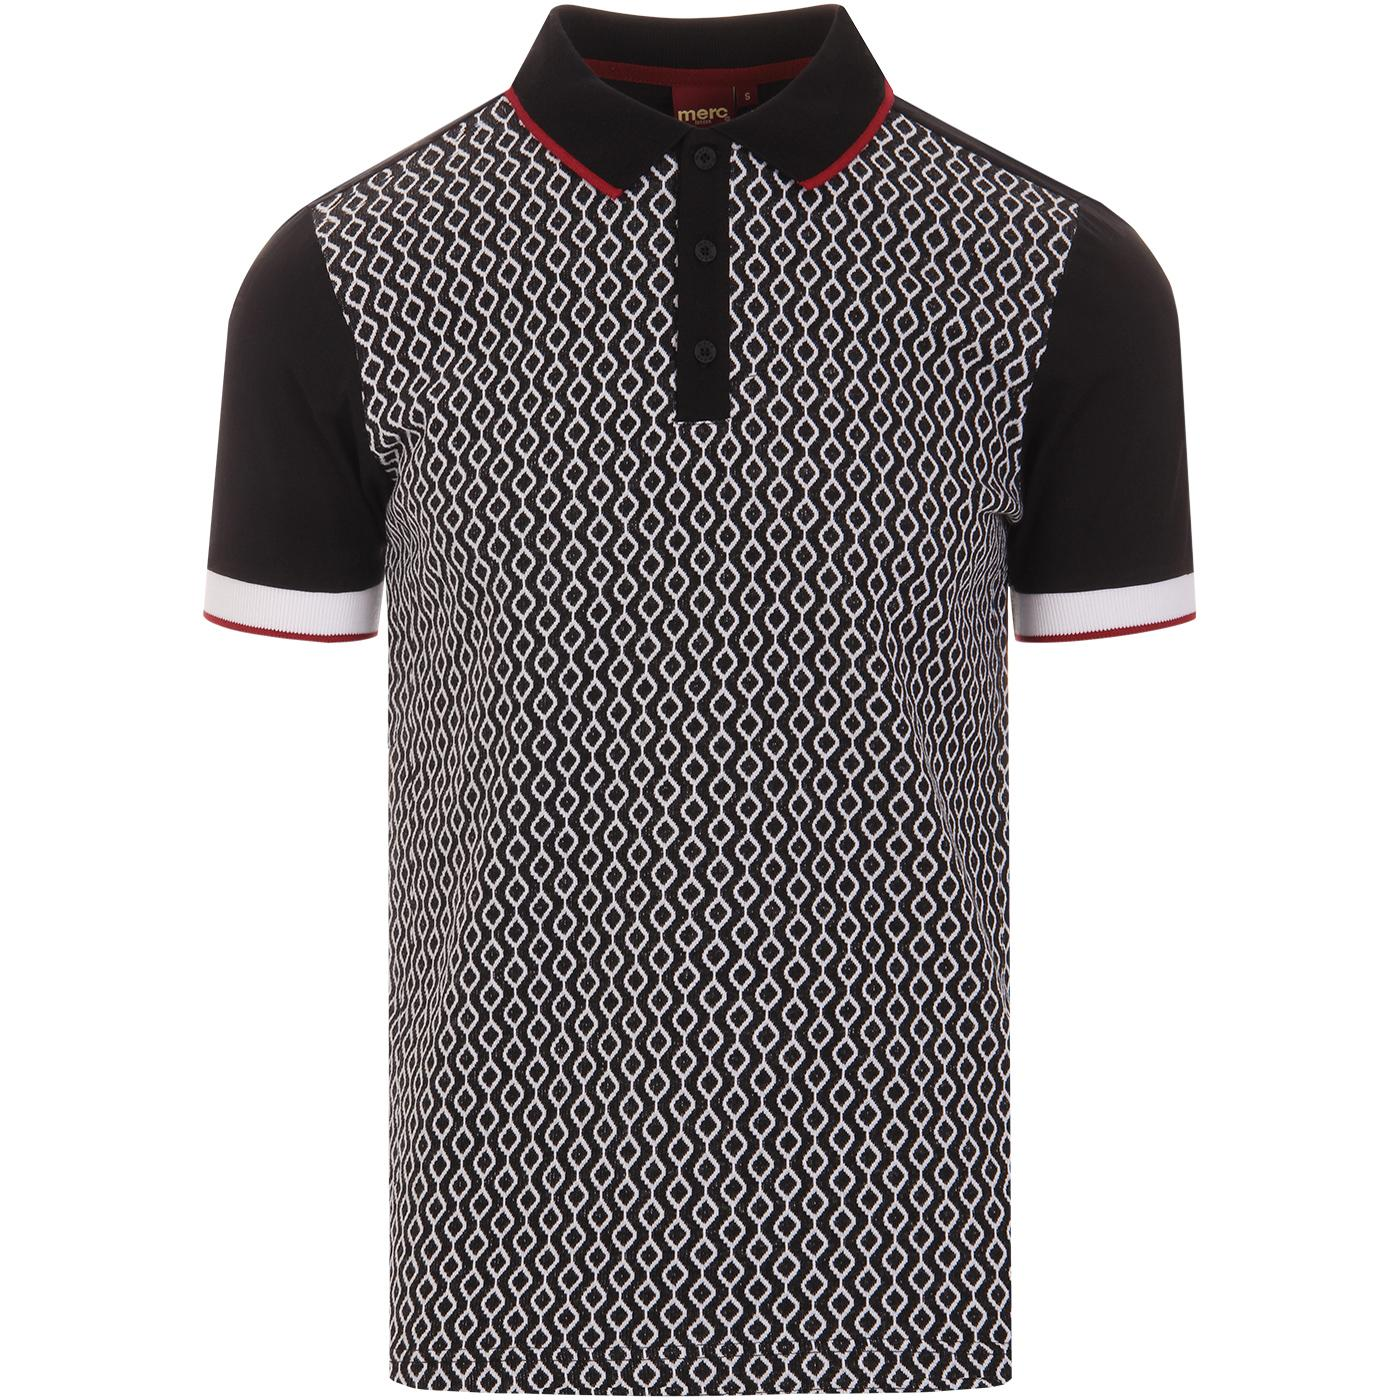 Swift MERC Mens Retro Mod Geometric Panel Polo Top